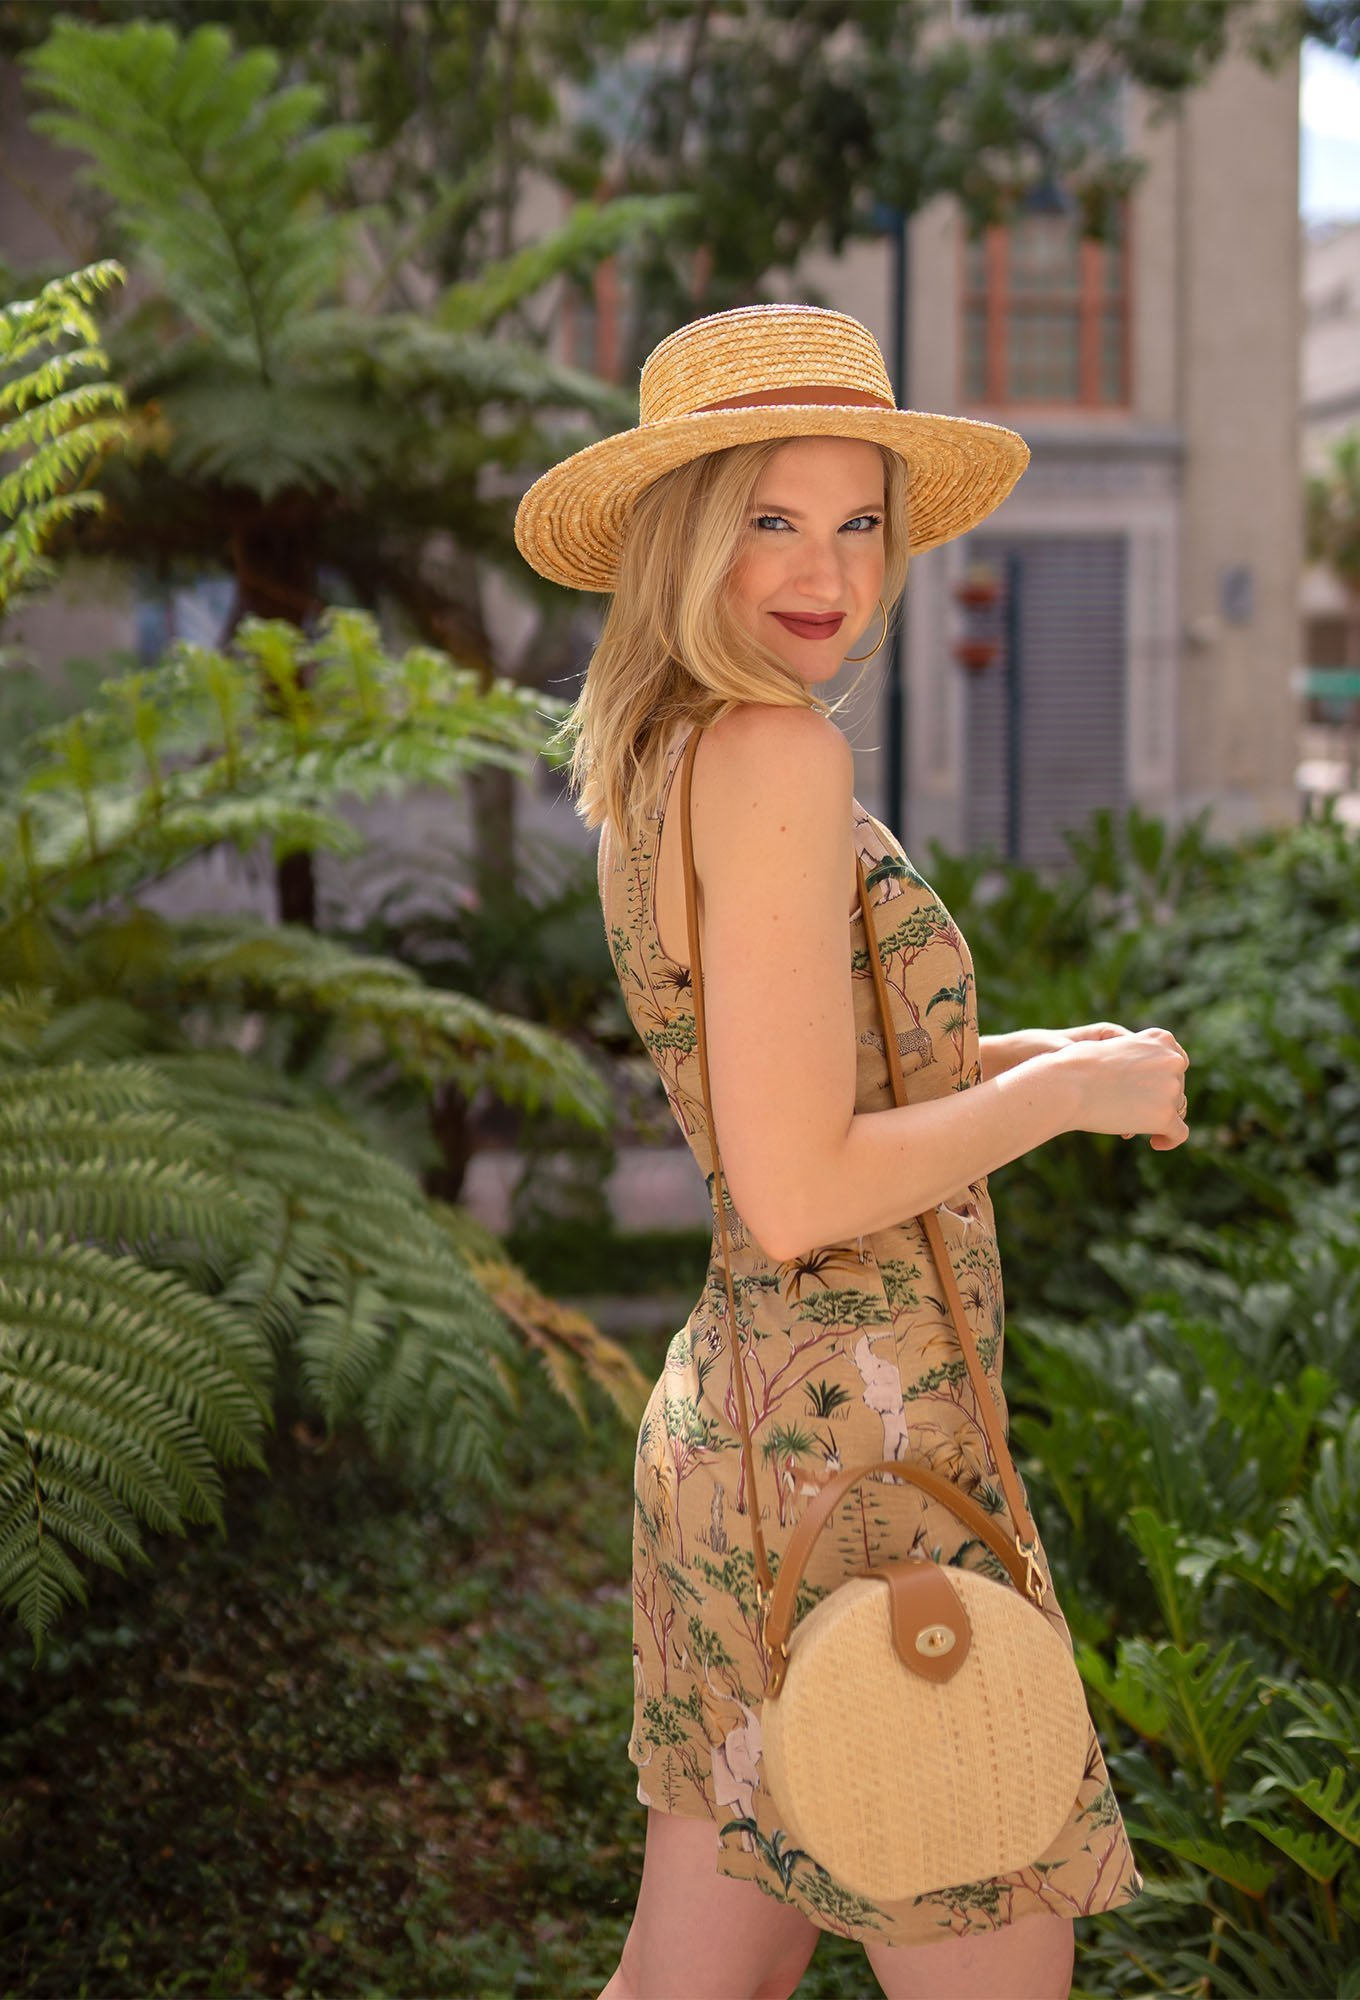 Ashley Brooke styles outfit with straw hat and animal print dress.